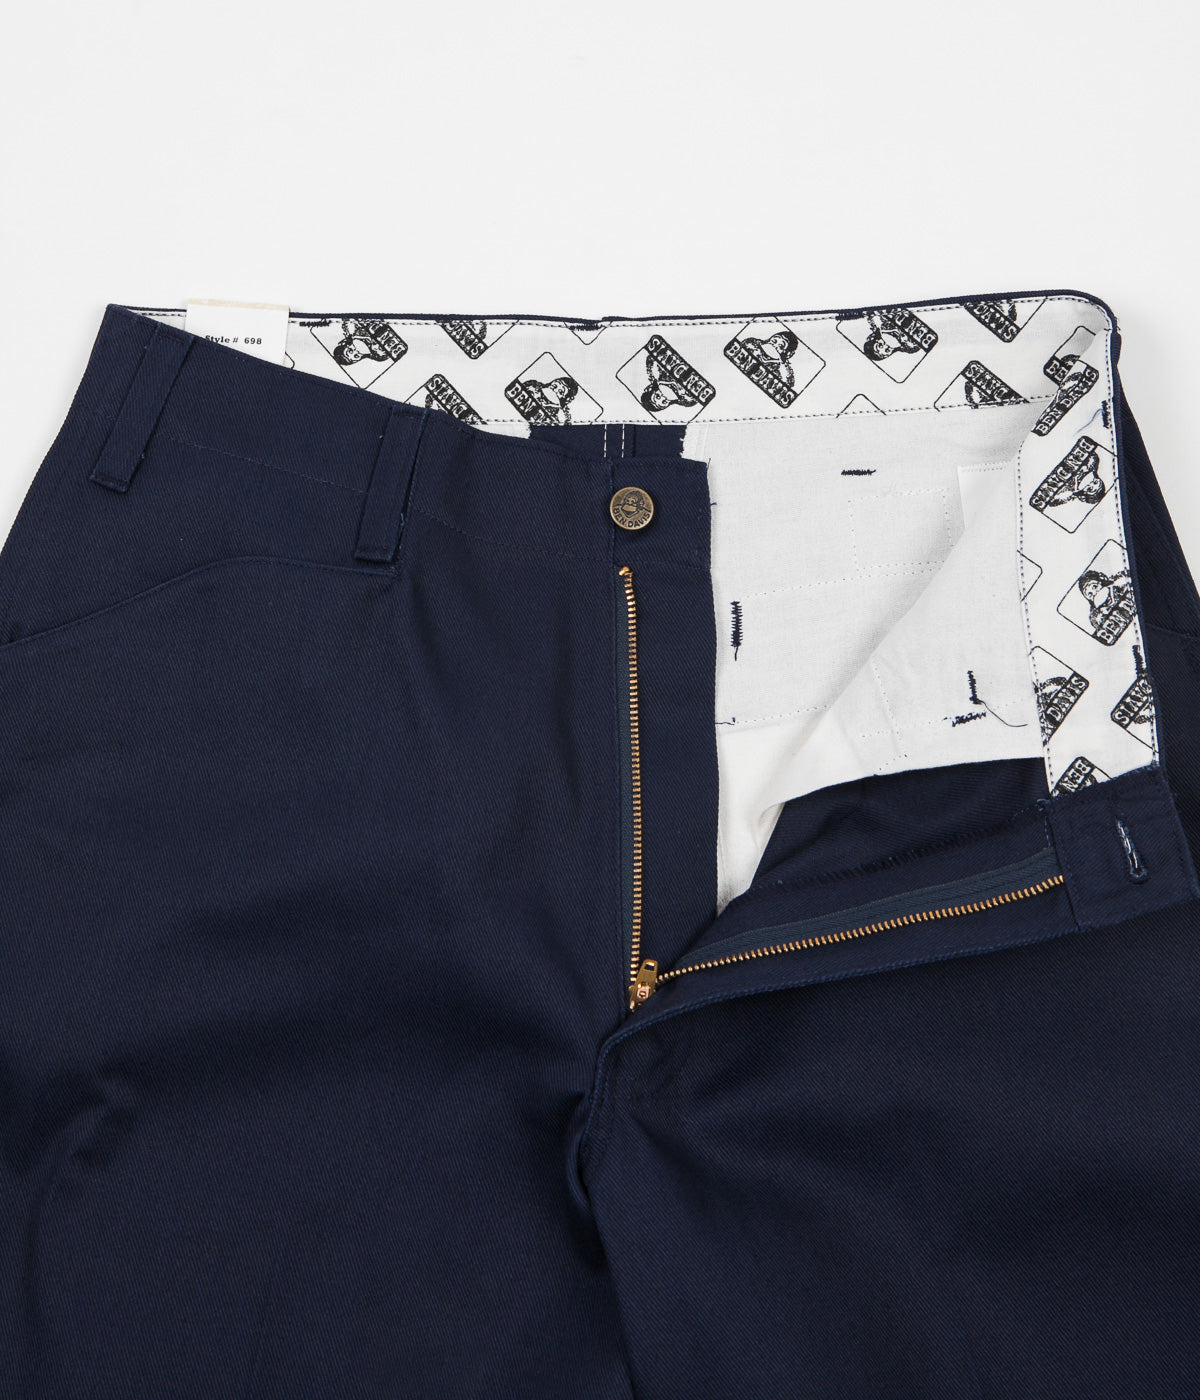 Ben Davis Original Ben's Work Trousers - Navy